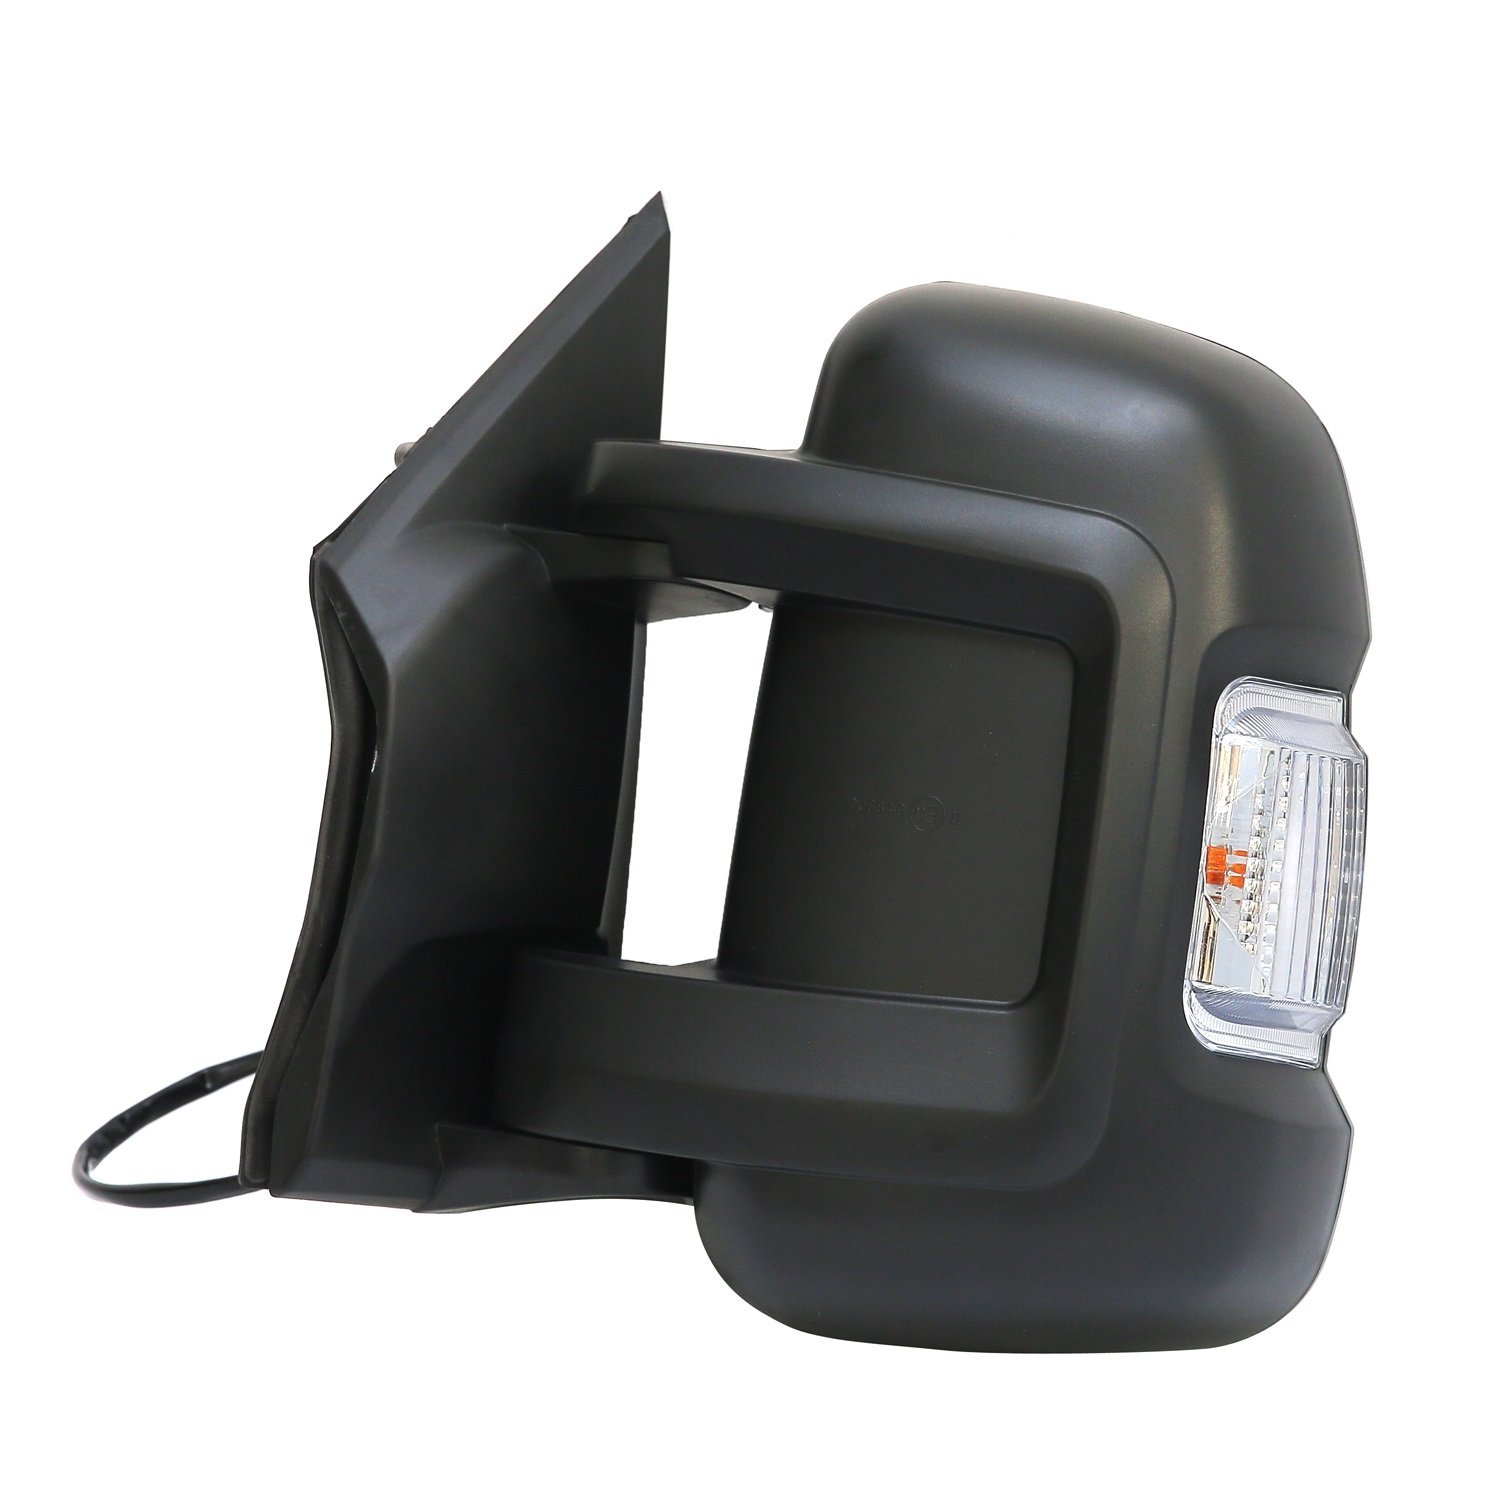 2500 Work Van New Six 3500 Brand New Driver Left SIde Replacement Side Mirror Upper Glasses With Heated fit Ram Promaster 1500